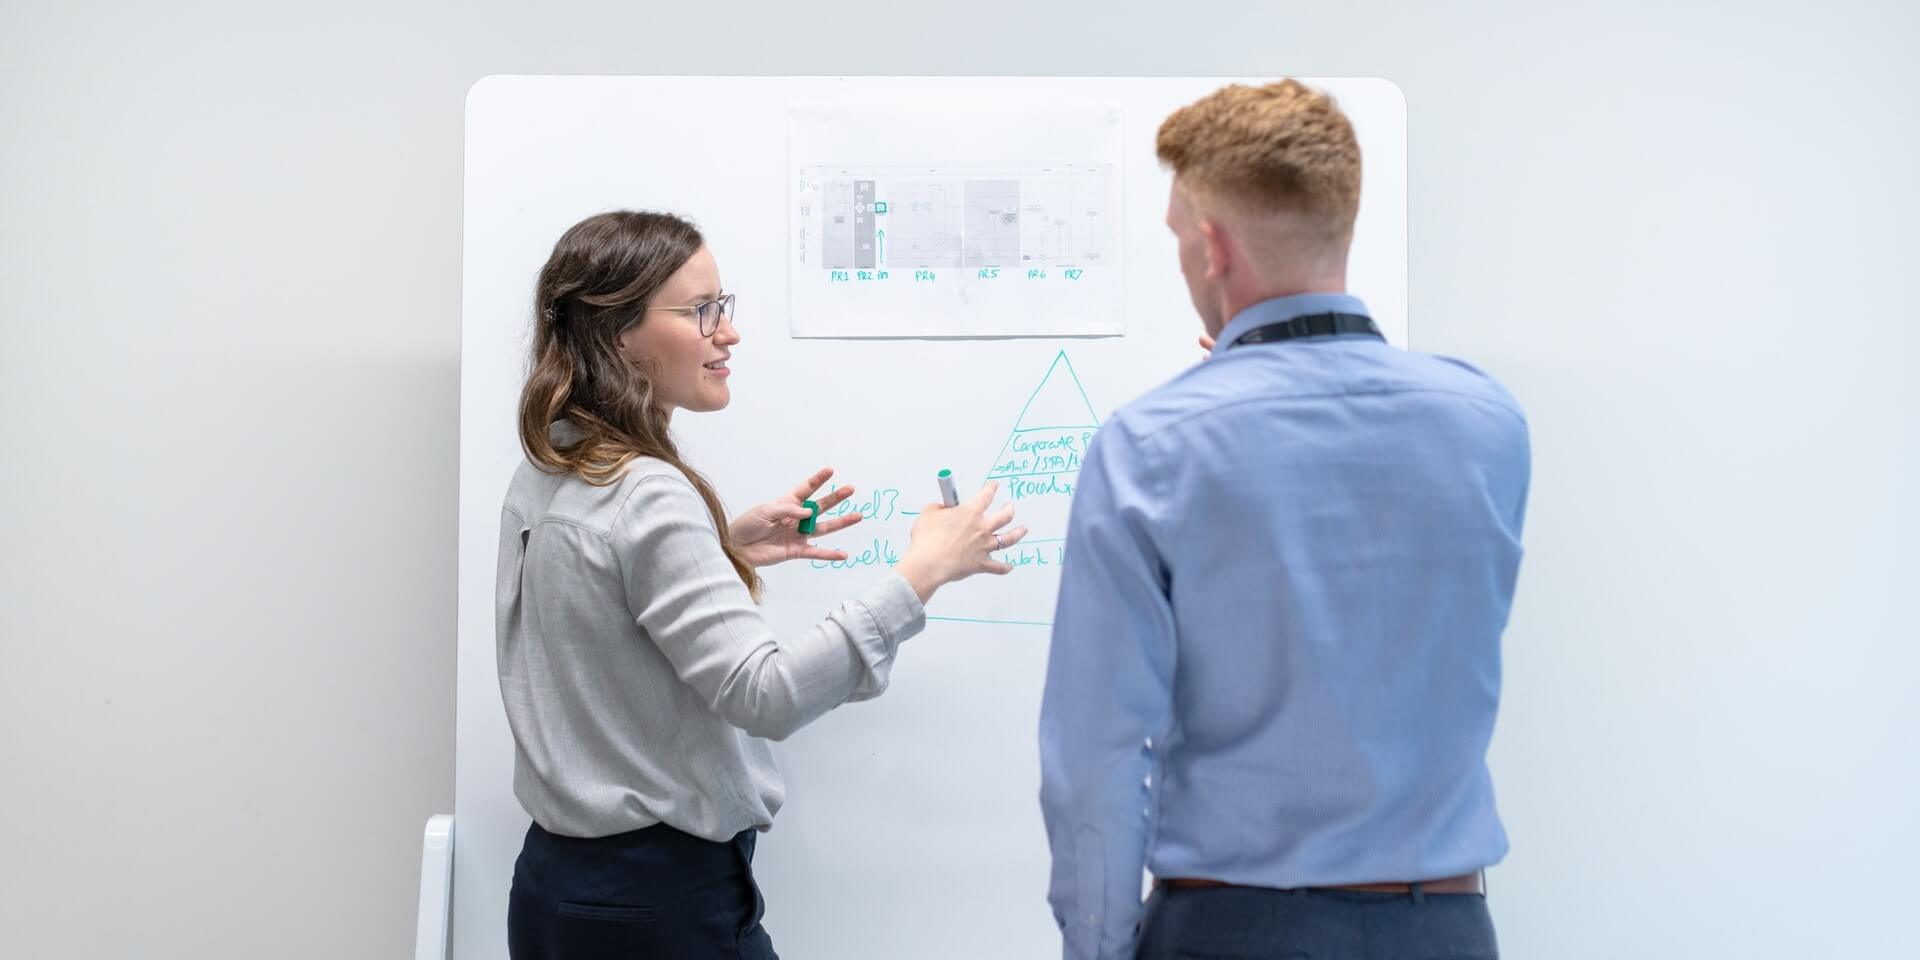 two people discussing tactics at a whiteboard